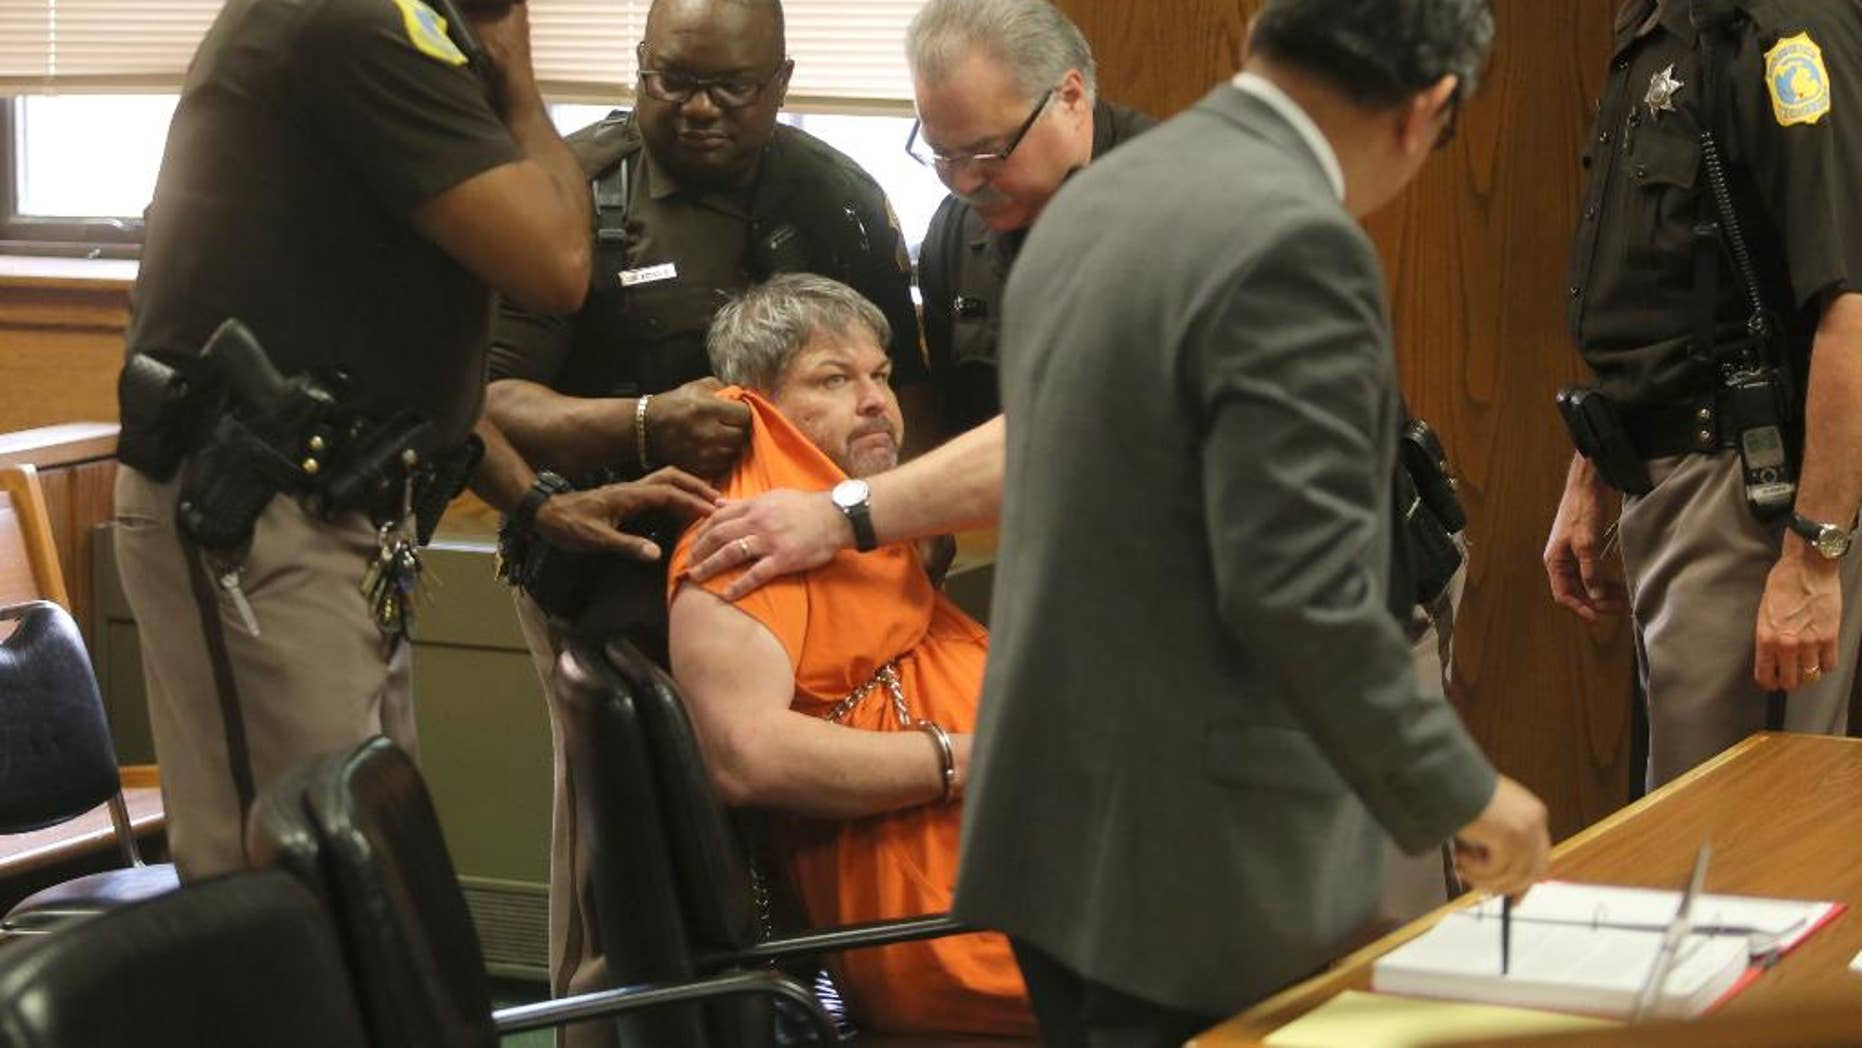 Kalamazoo County Deputies try to remove Jason Dalton after an outburst during his preliminary examination in district court on Friday, May 20, 2016 in Kalamazoo, Mich. Prosecutors say Dalton gunned down six people and wounded two others in the Kalamazoo area over several hours on Feb. 20 while driving for Uber that night. ( Mark Bugnaski/Kalamazoo Gazette-MLive Media Group via AP, Pool)